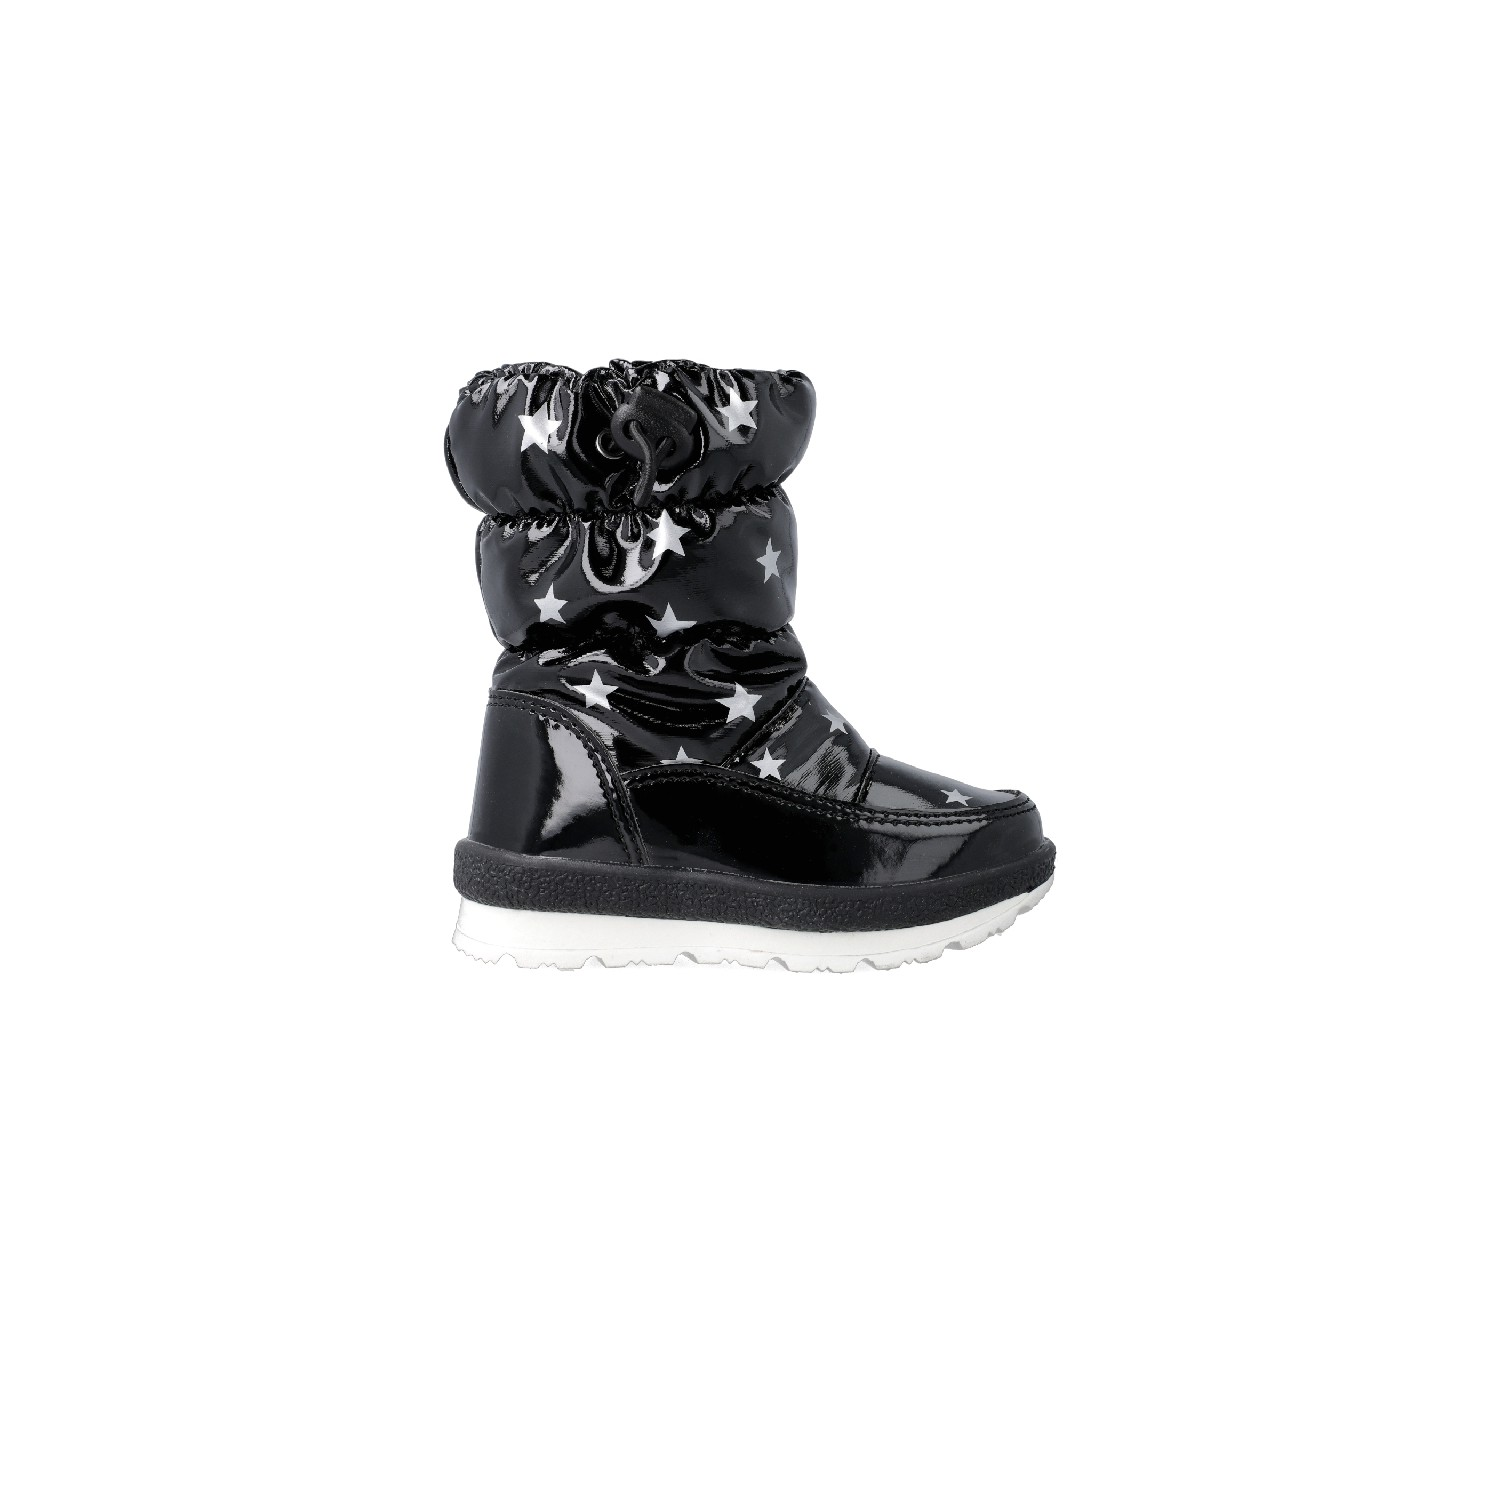 Boots for girl Hatria